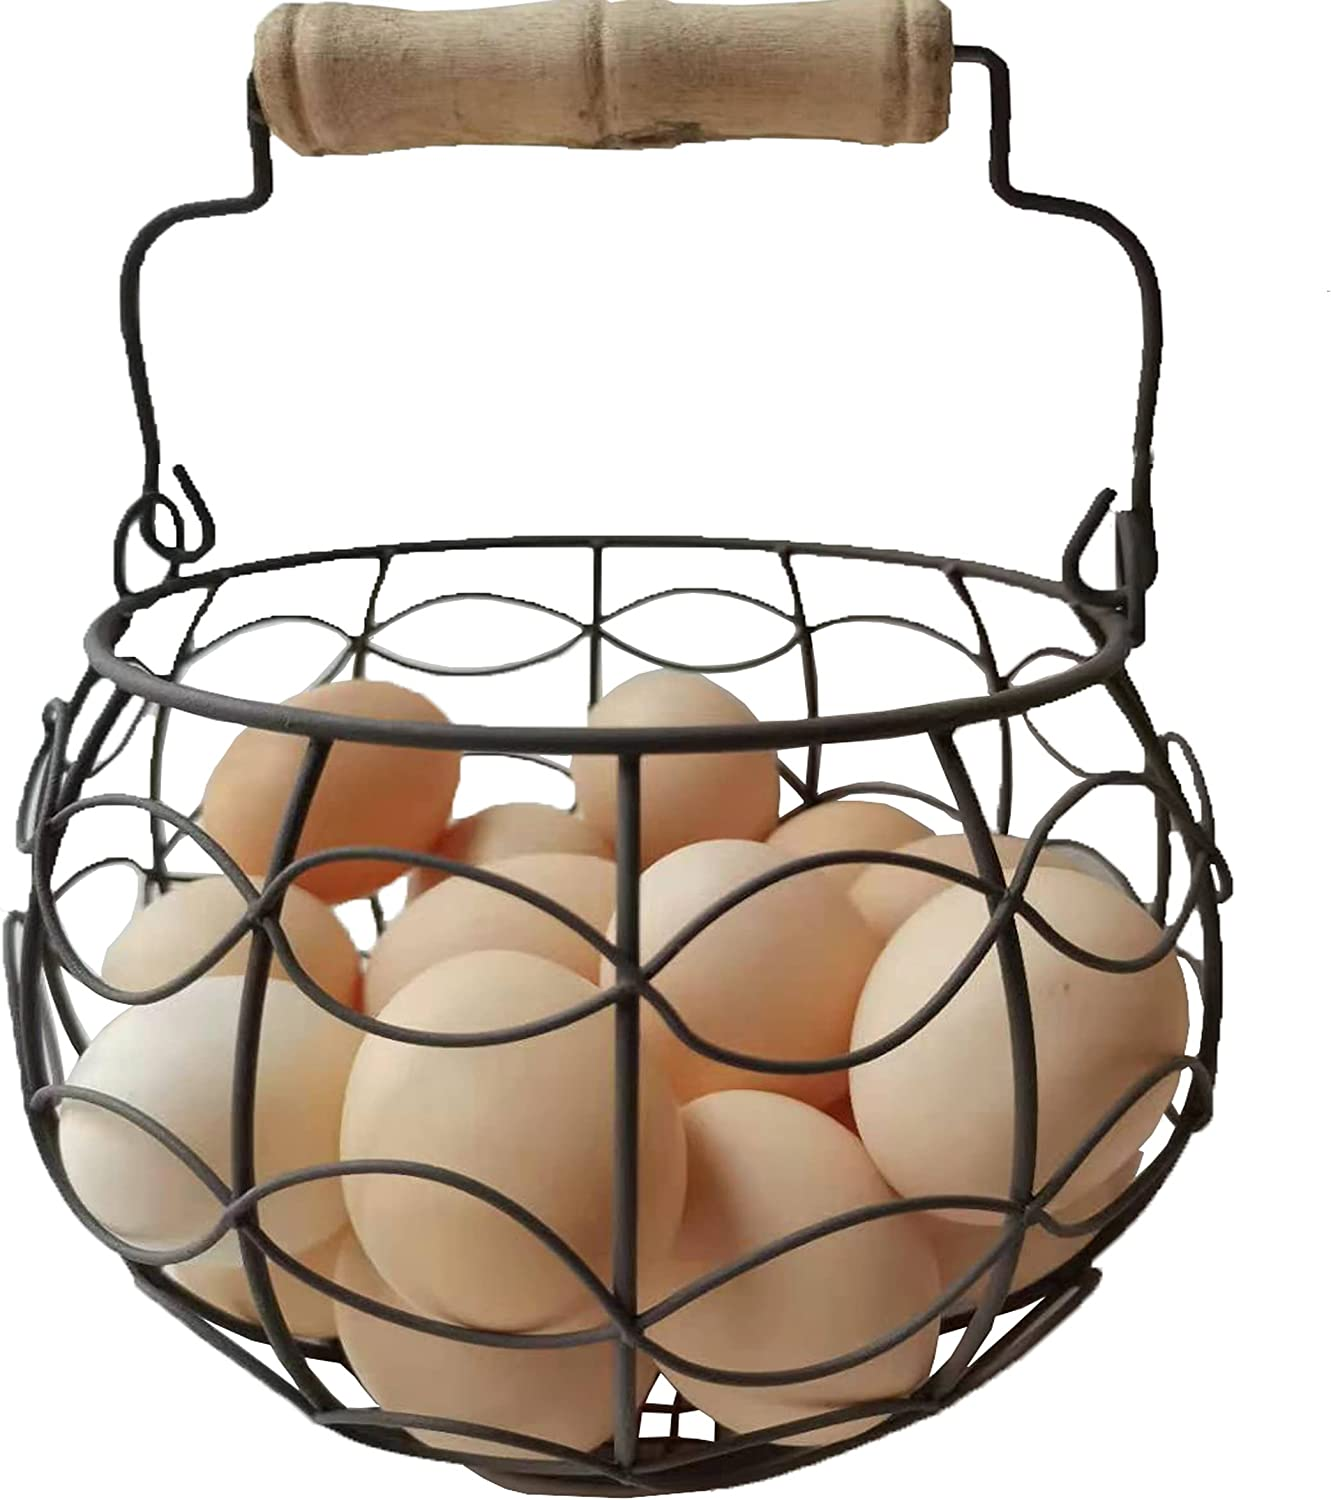 Round Chicken Wire Egg OFFicial store Baskets Rusty LINCOUNTRY Max 90% OFF Color Bask Metal